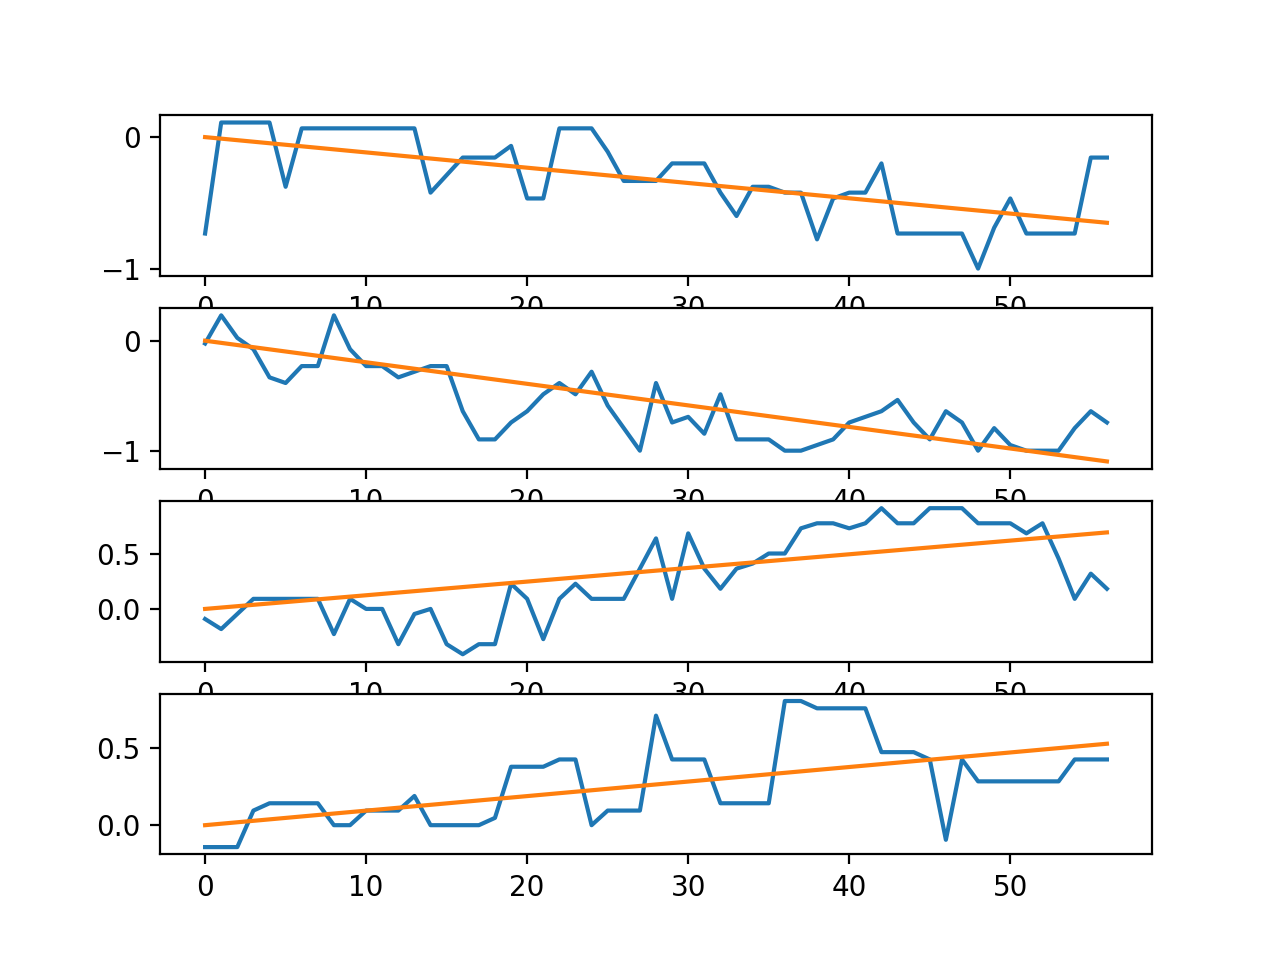 Line plots for the time series in a single trace with trend lines